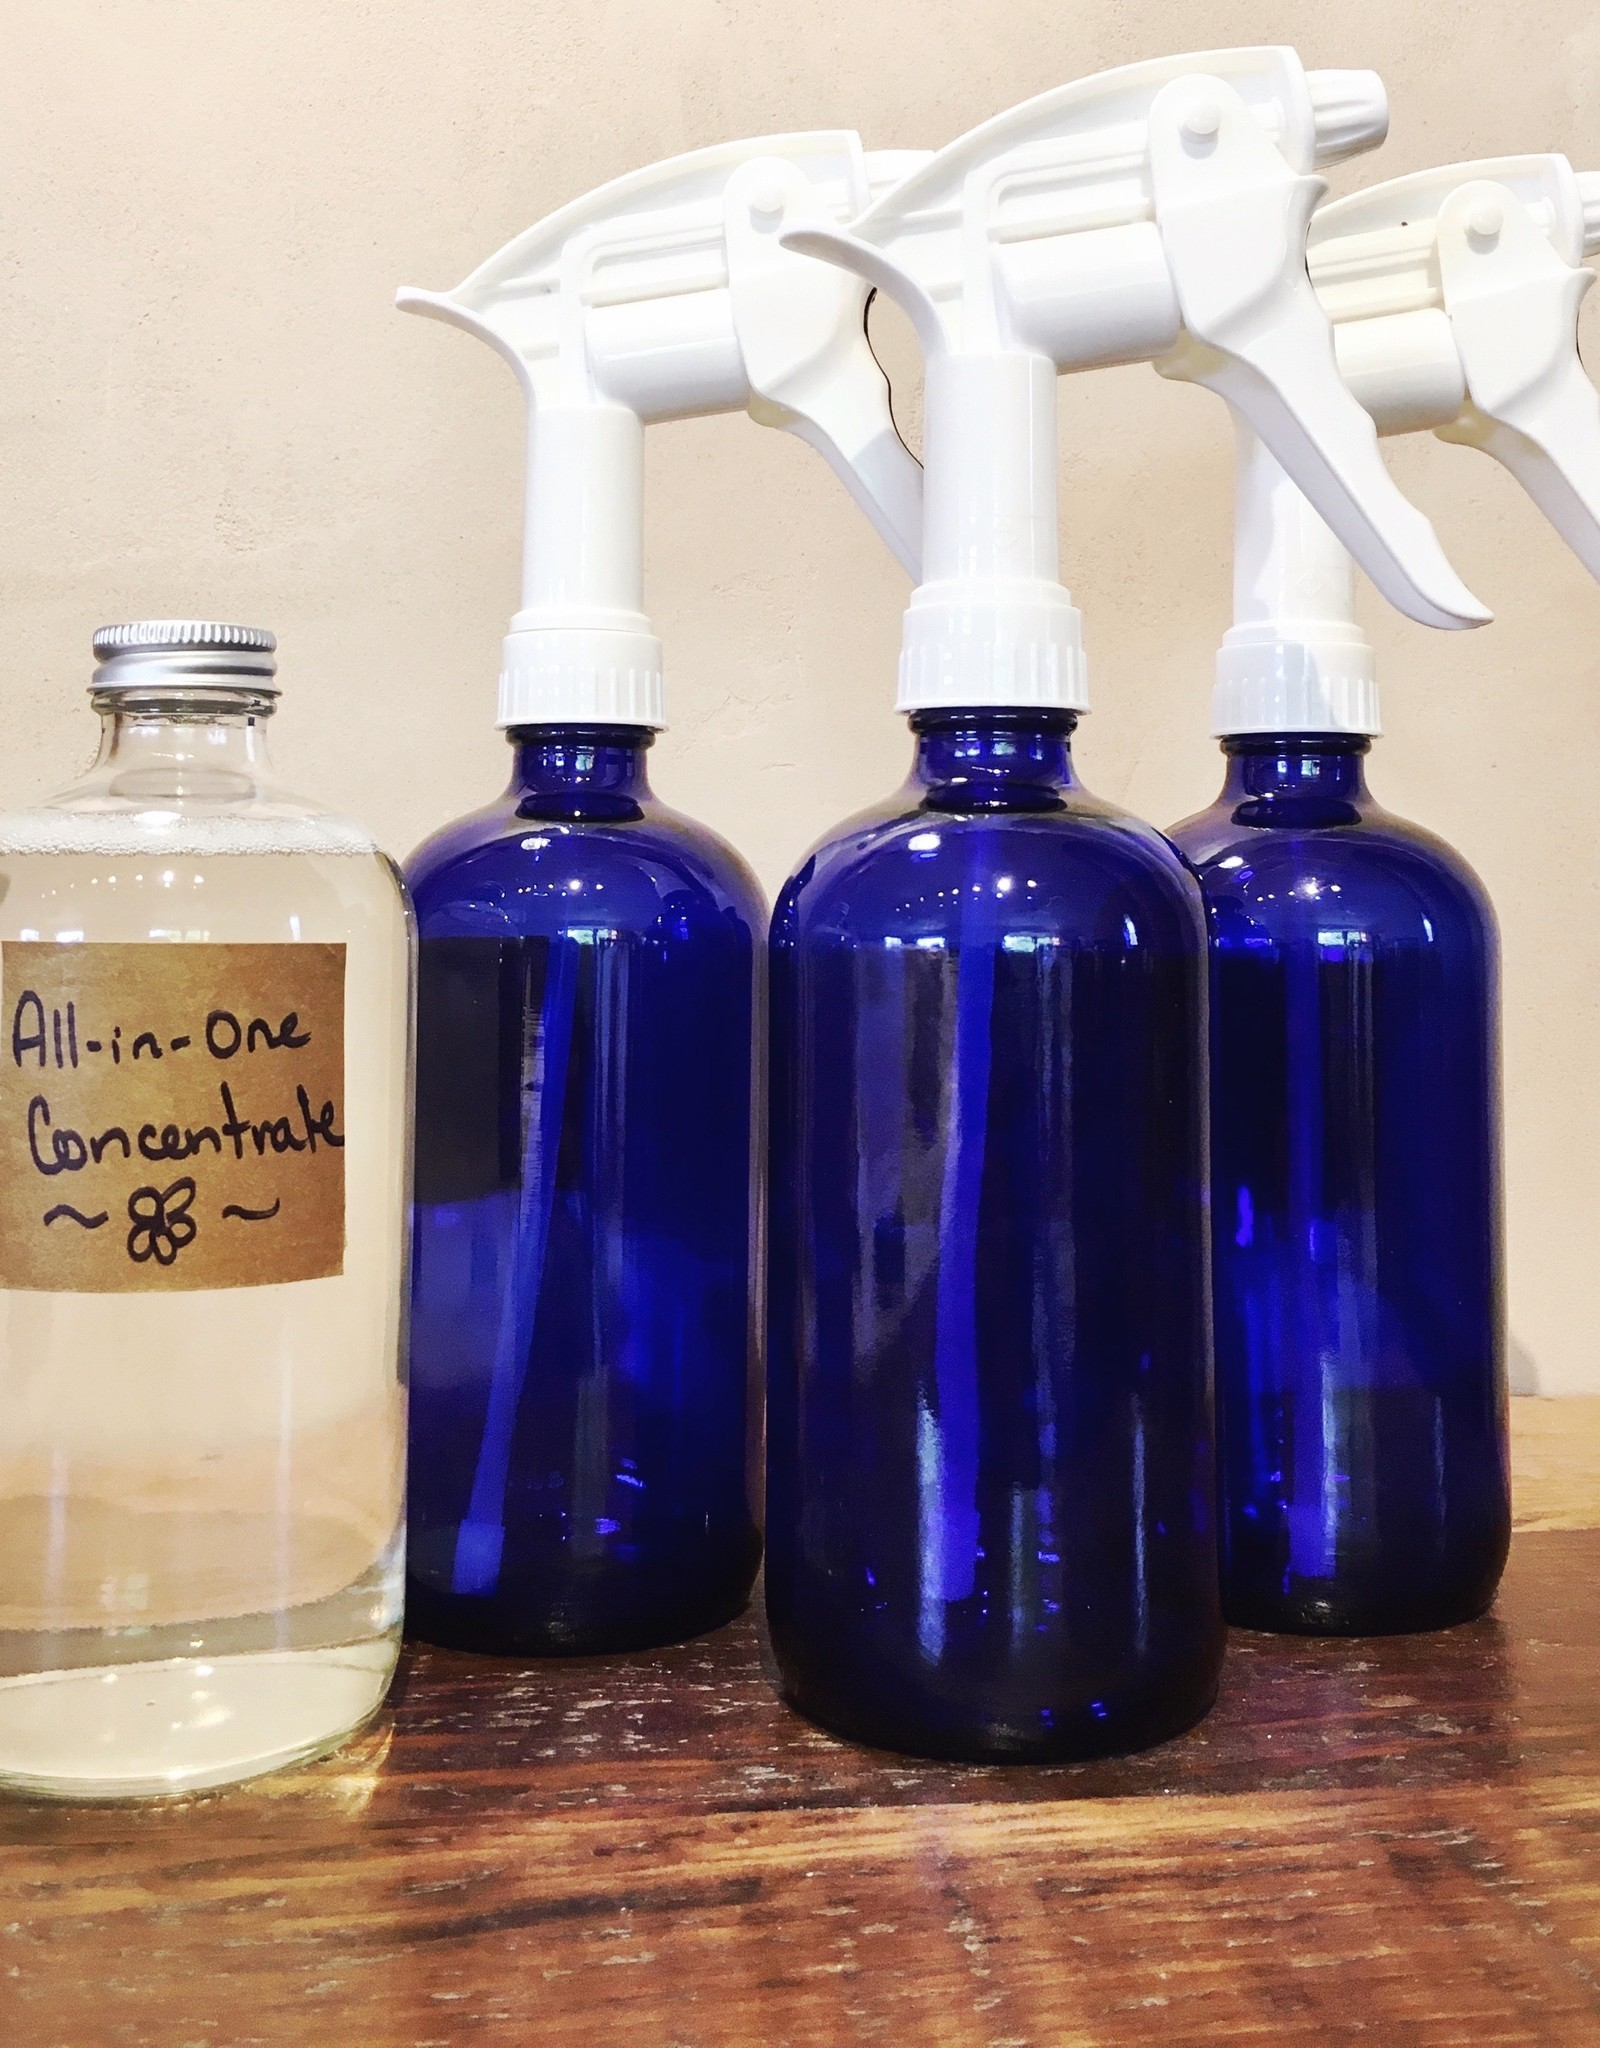 All-in-One Concentrate Cleaning Kit